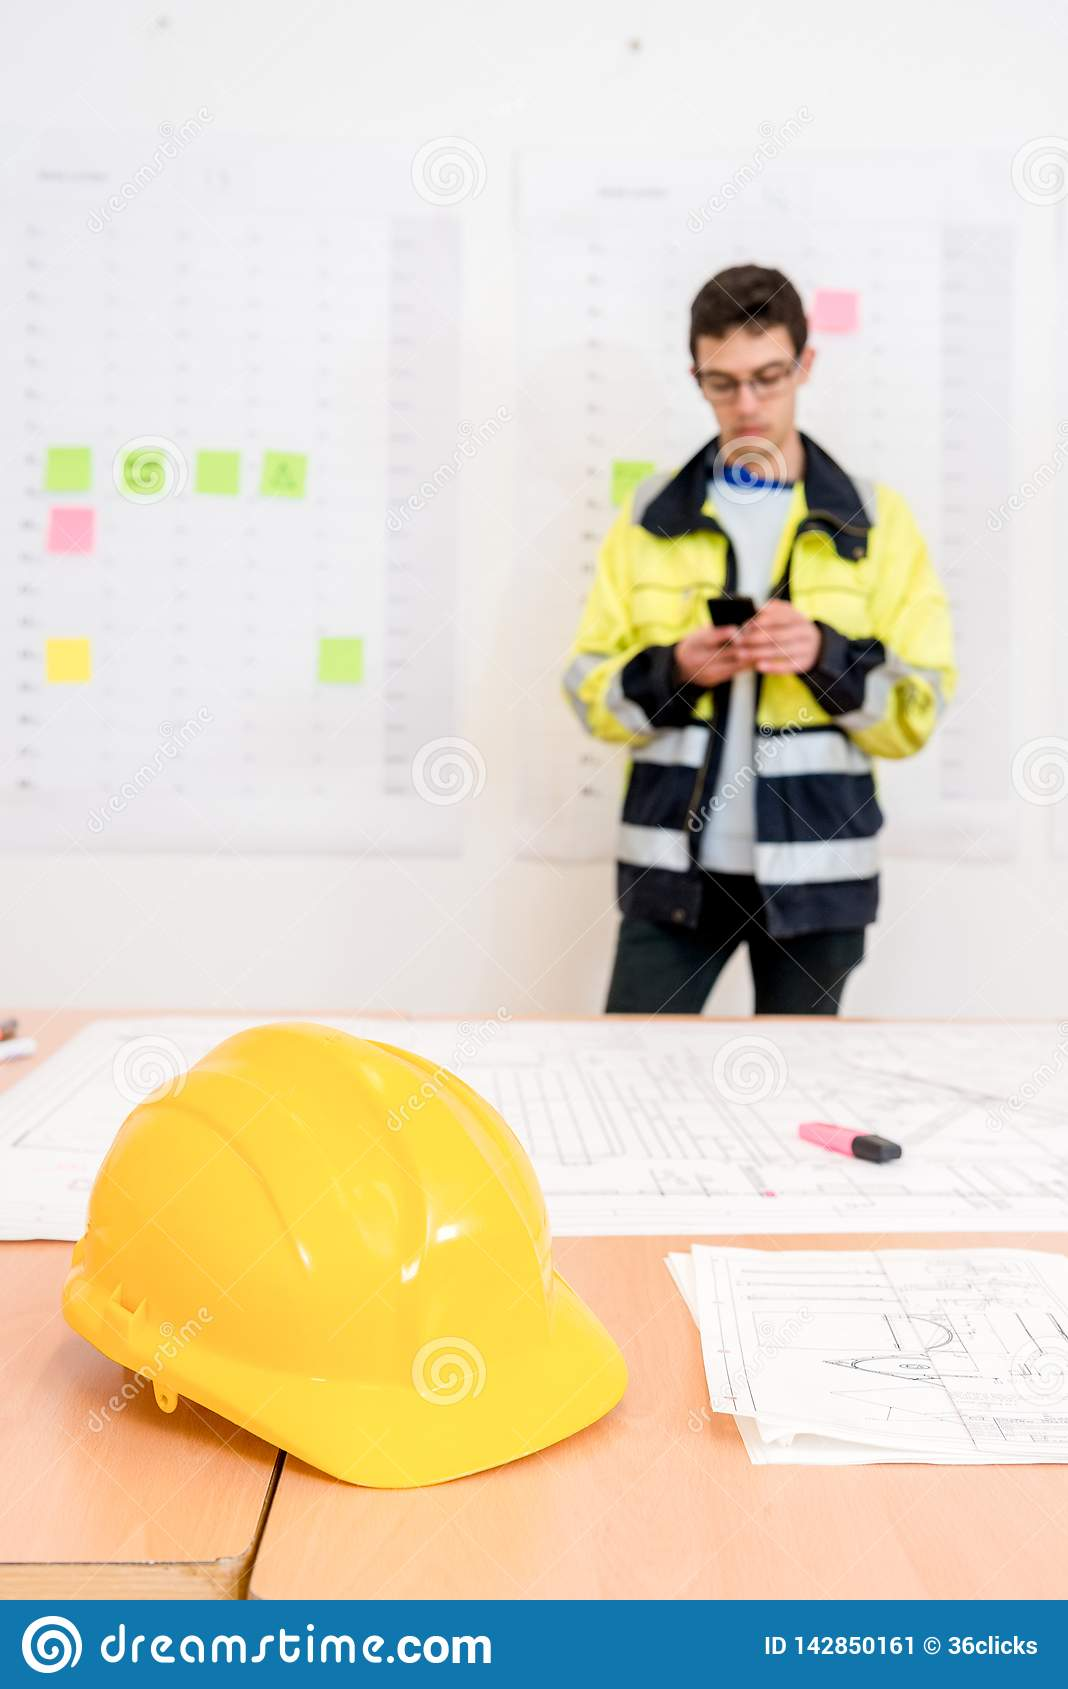 Yellow Helmet On Table With Contractor Using Phone In Office